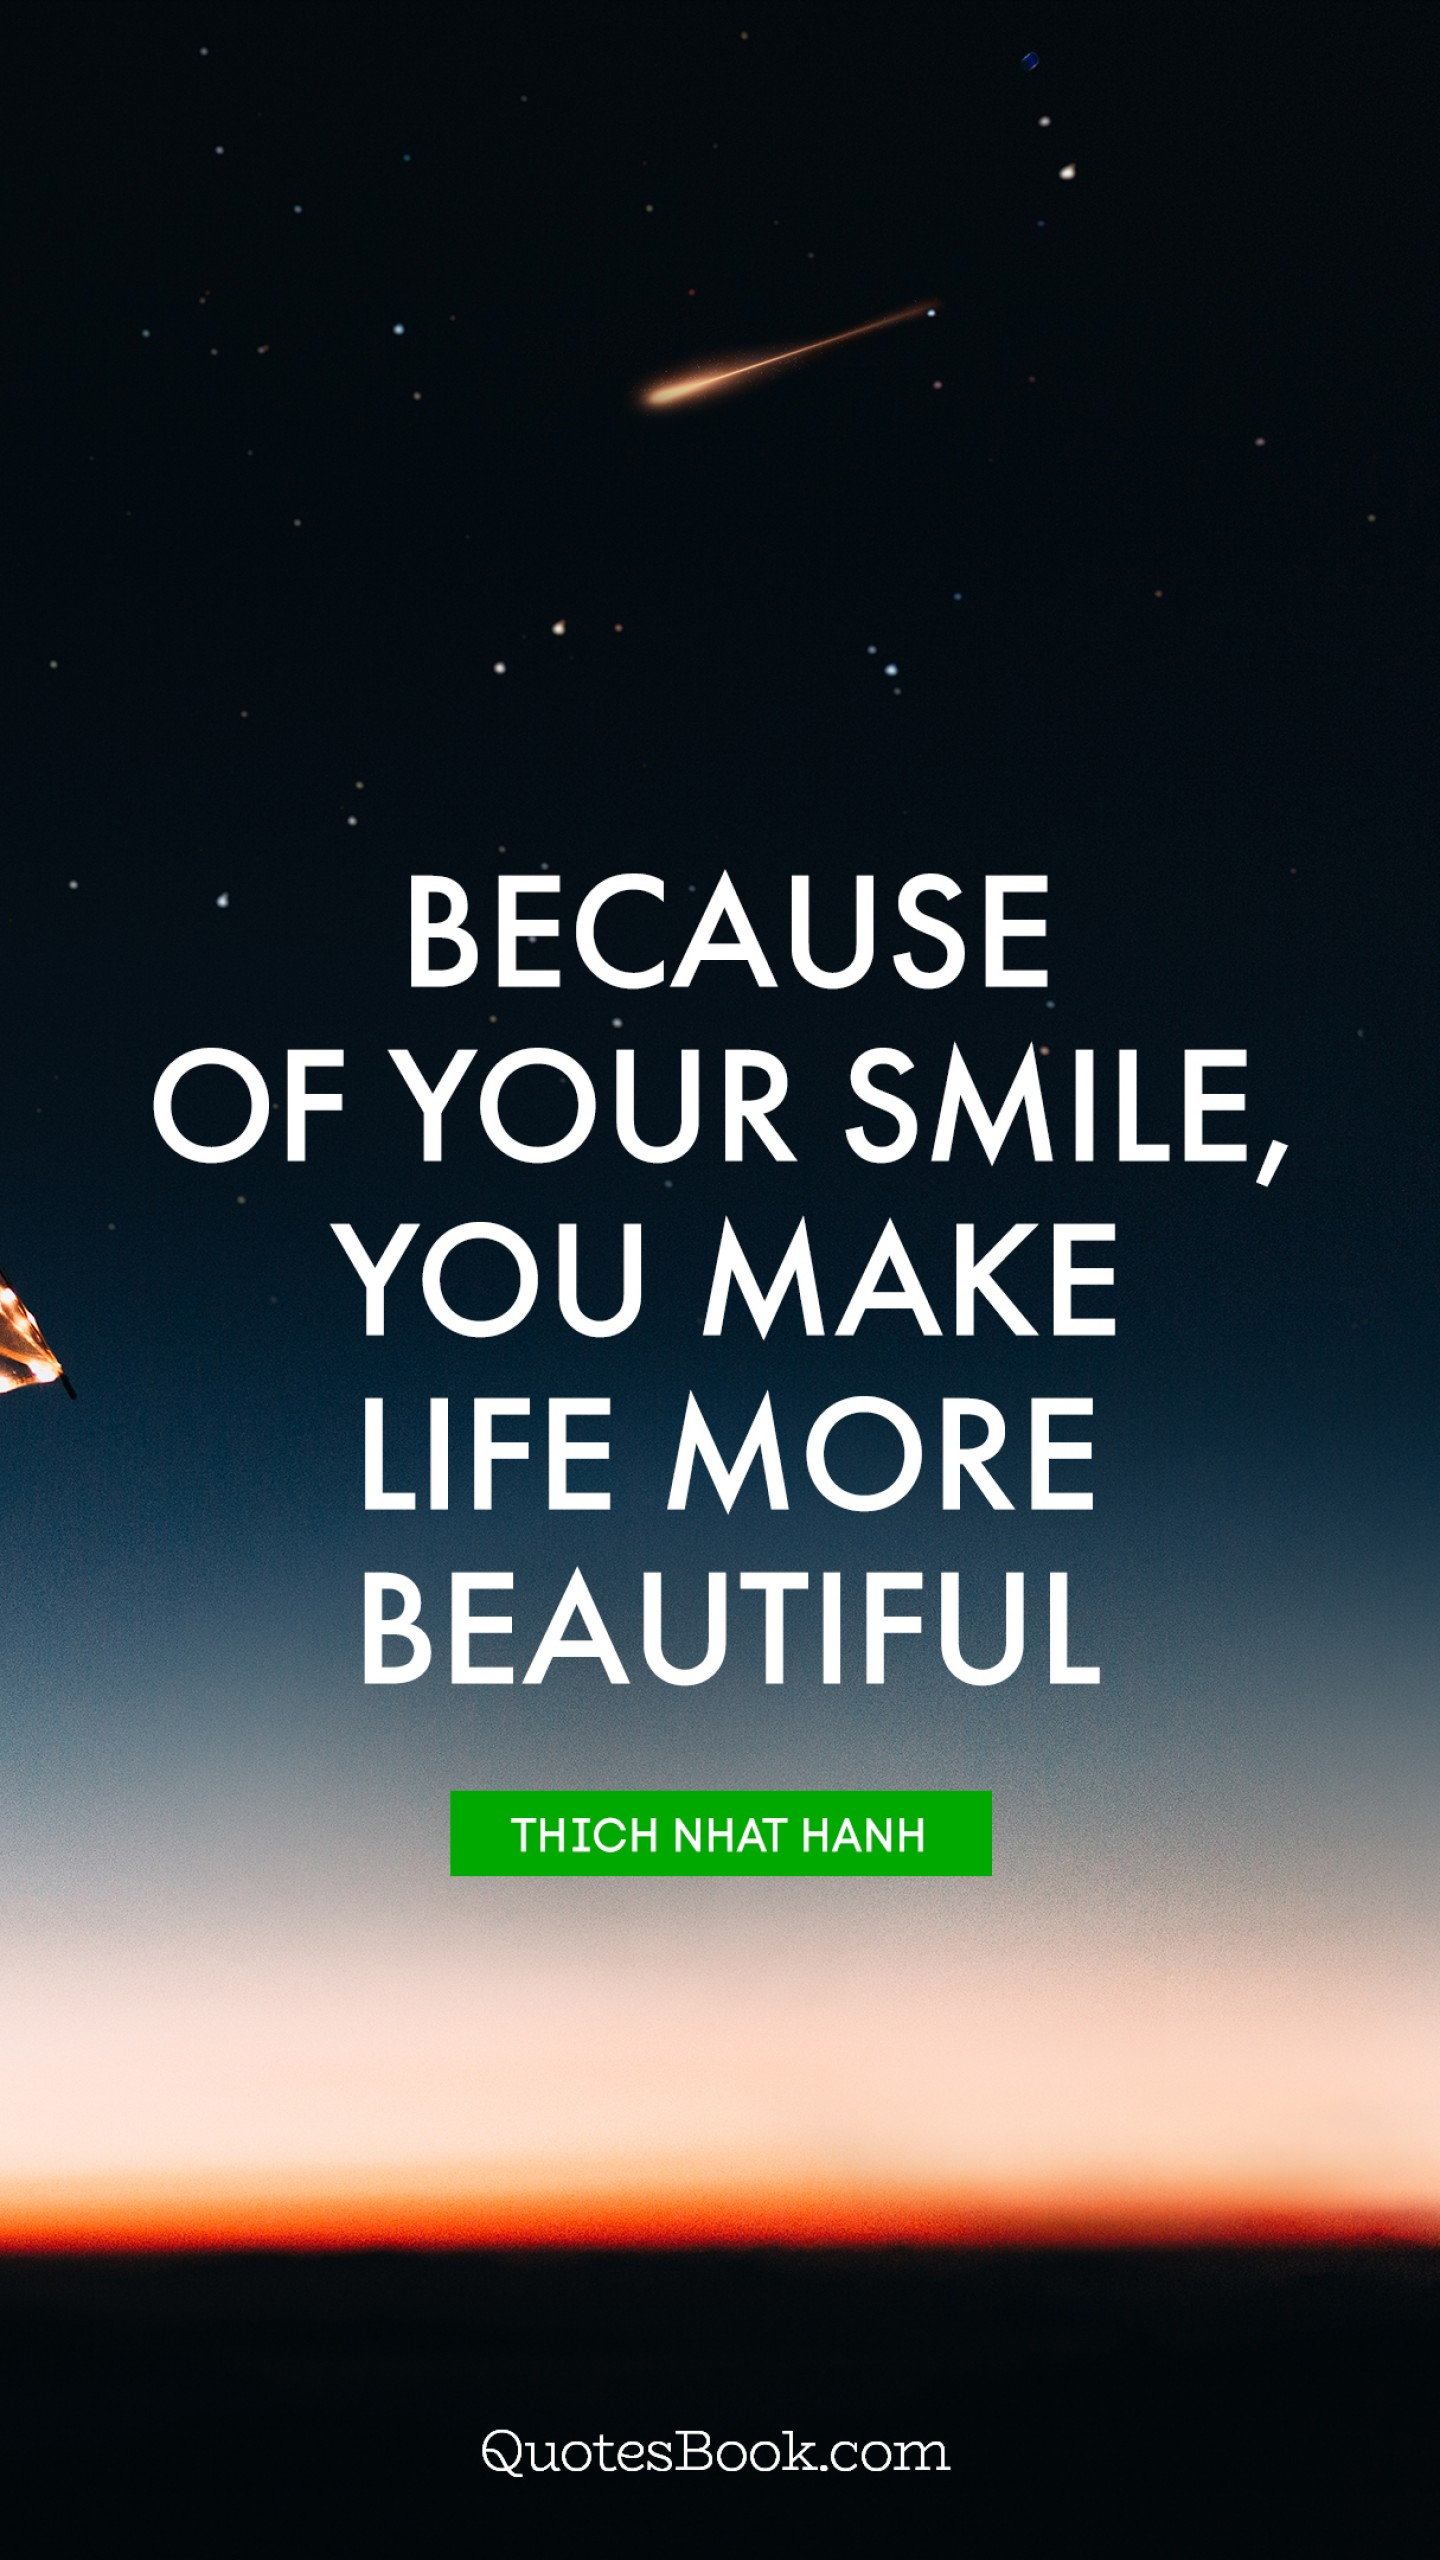 Because Of Your Smile You Make Life More Beautiful Quote By Thich Nhat Hanh Quotesbook